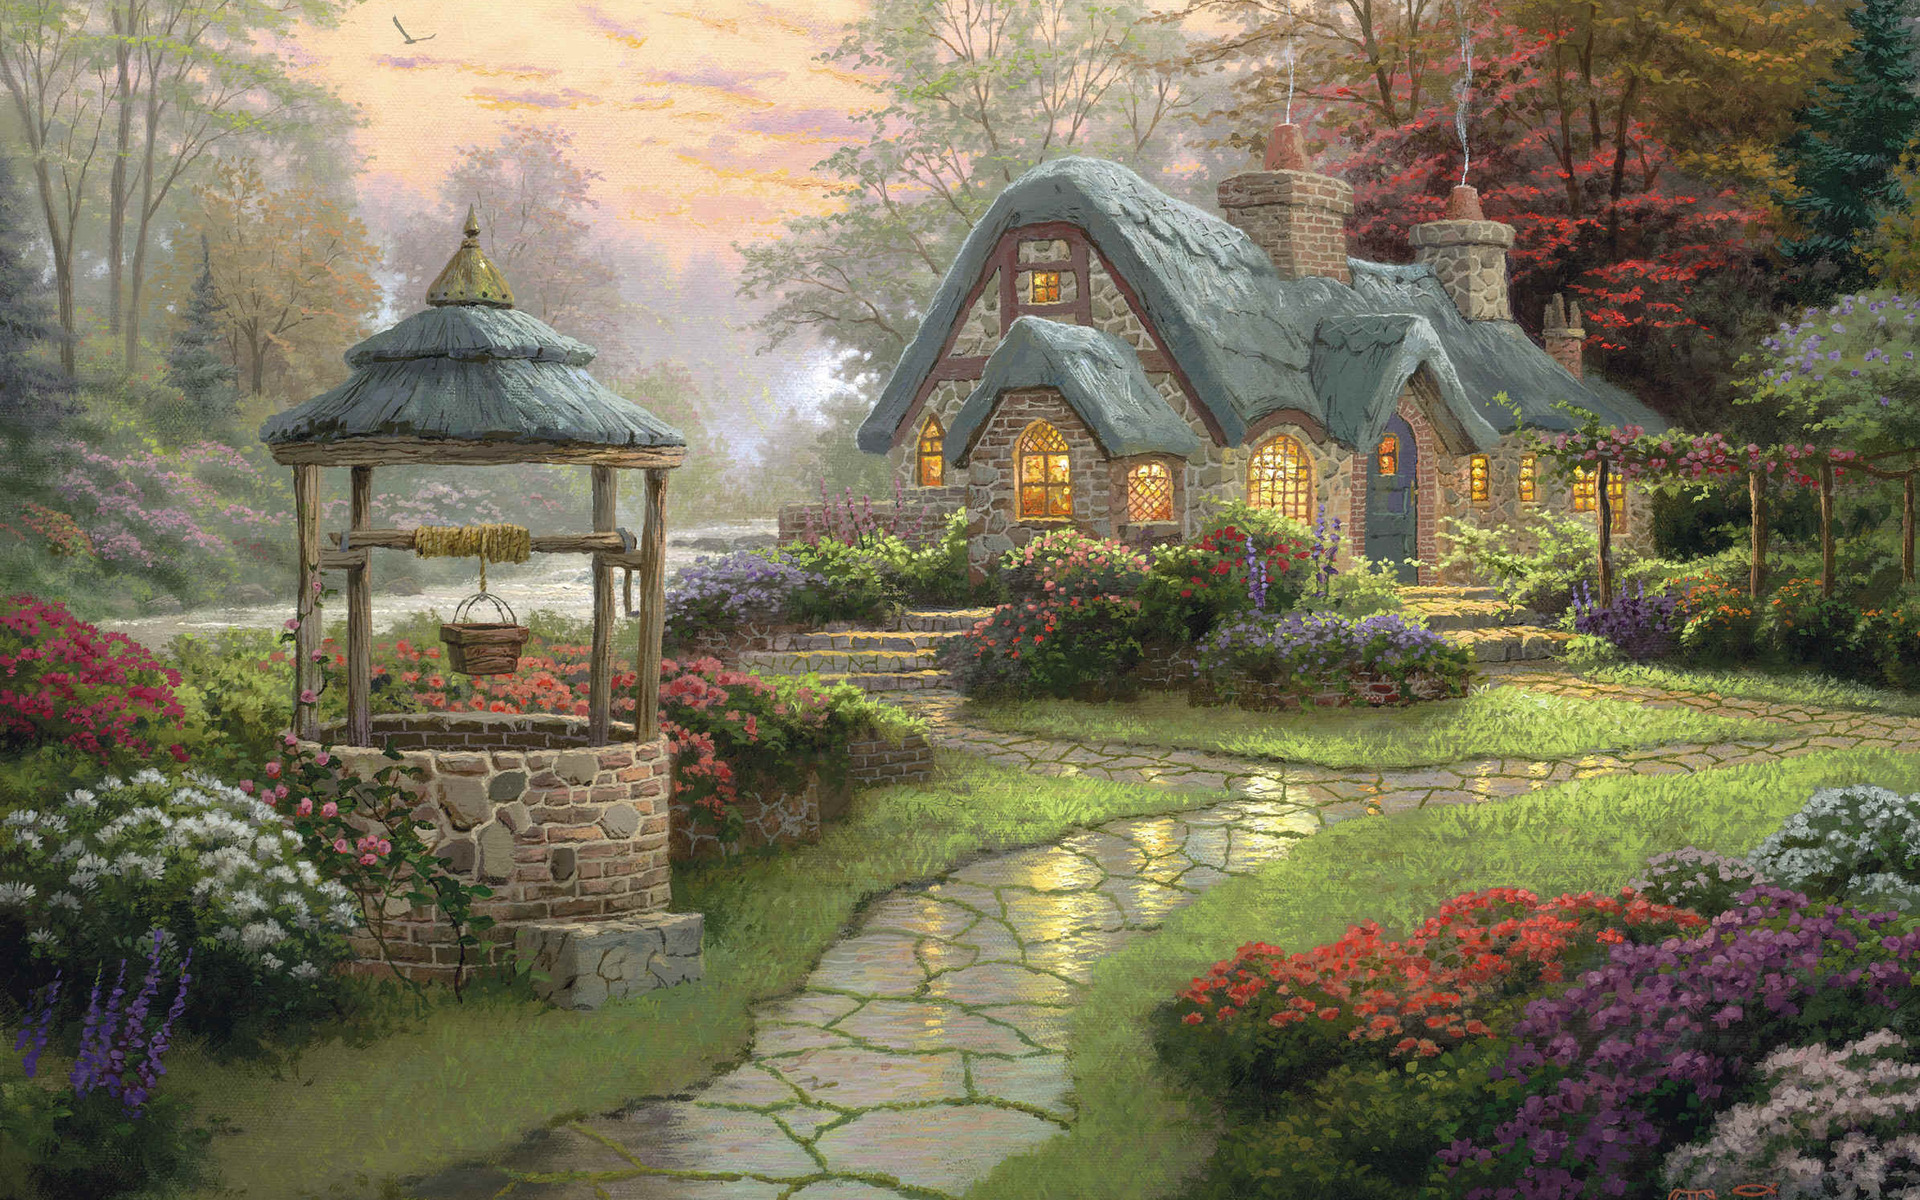 Thomas Kinkade HD Wallpaper   HD Wallpapers Backgrounds of Your Choice 1920x1200